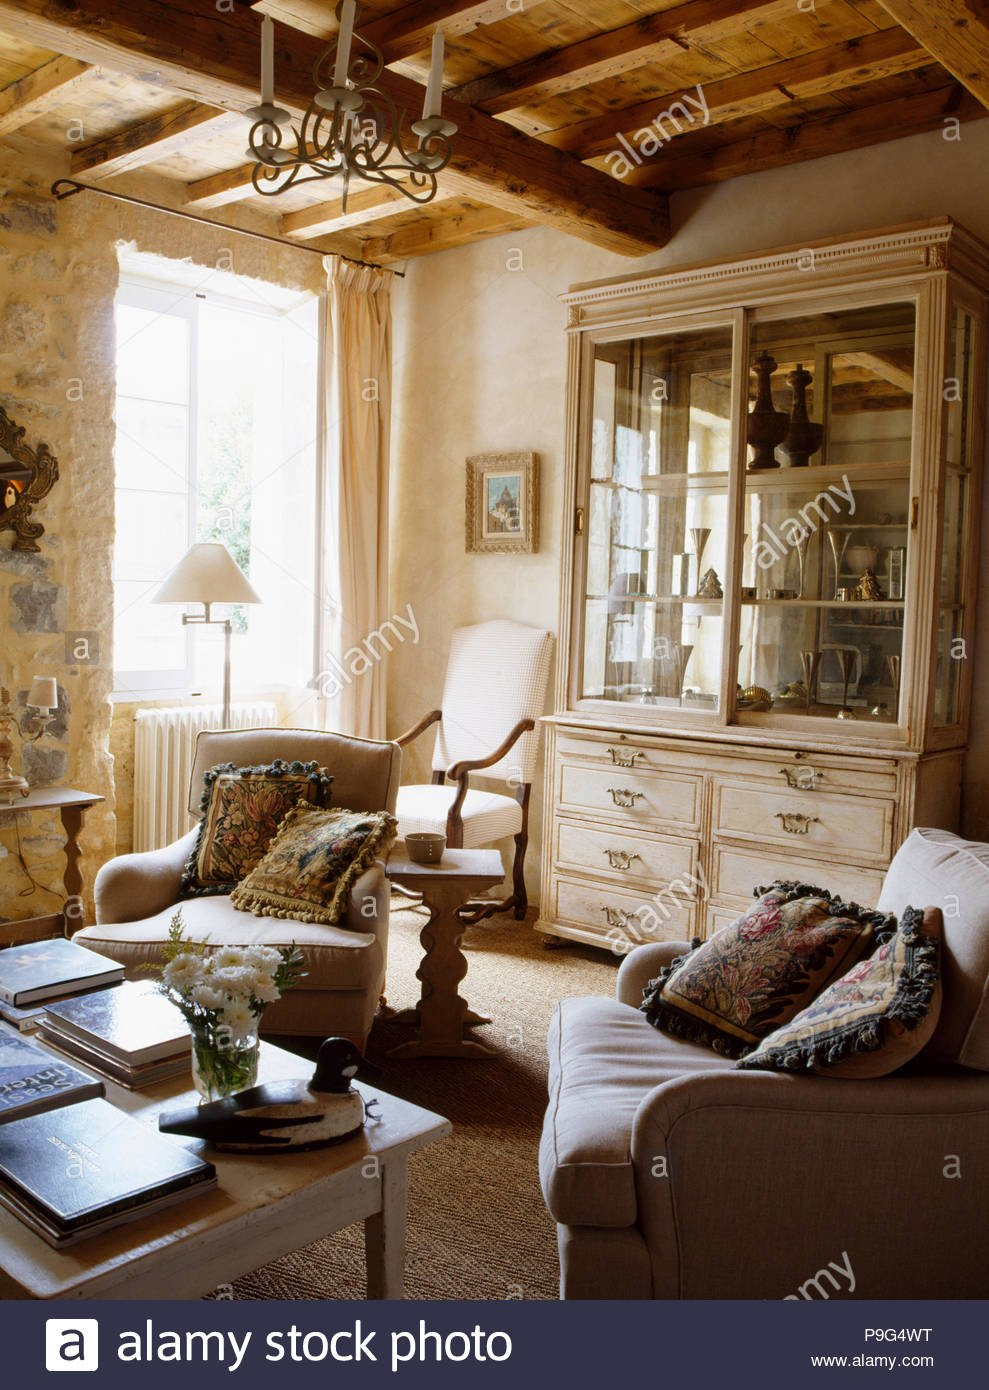 Comfortable Rustic Living Room Lovely fortable Armchairs In French Country Living Room with Glass Fronted Dresser and Rustic Beamed